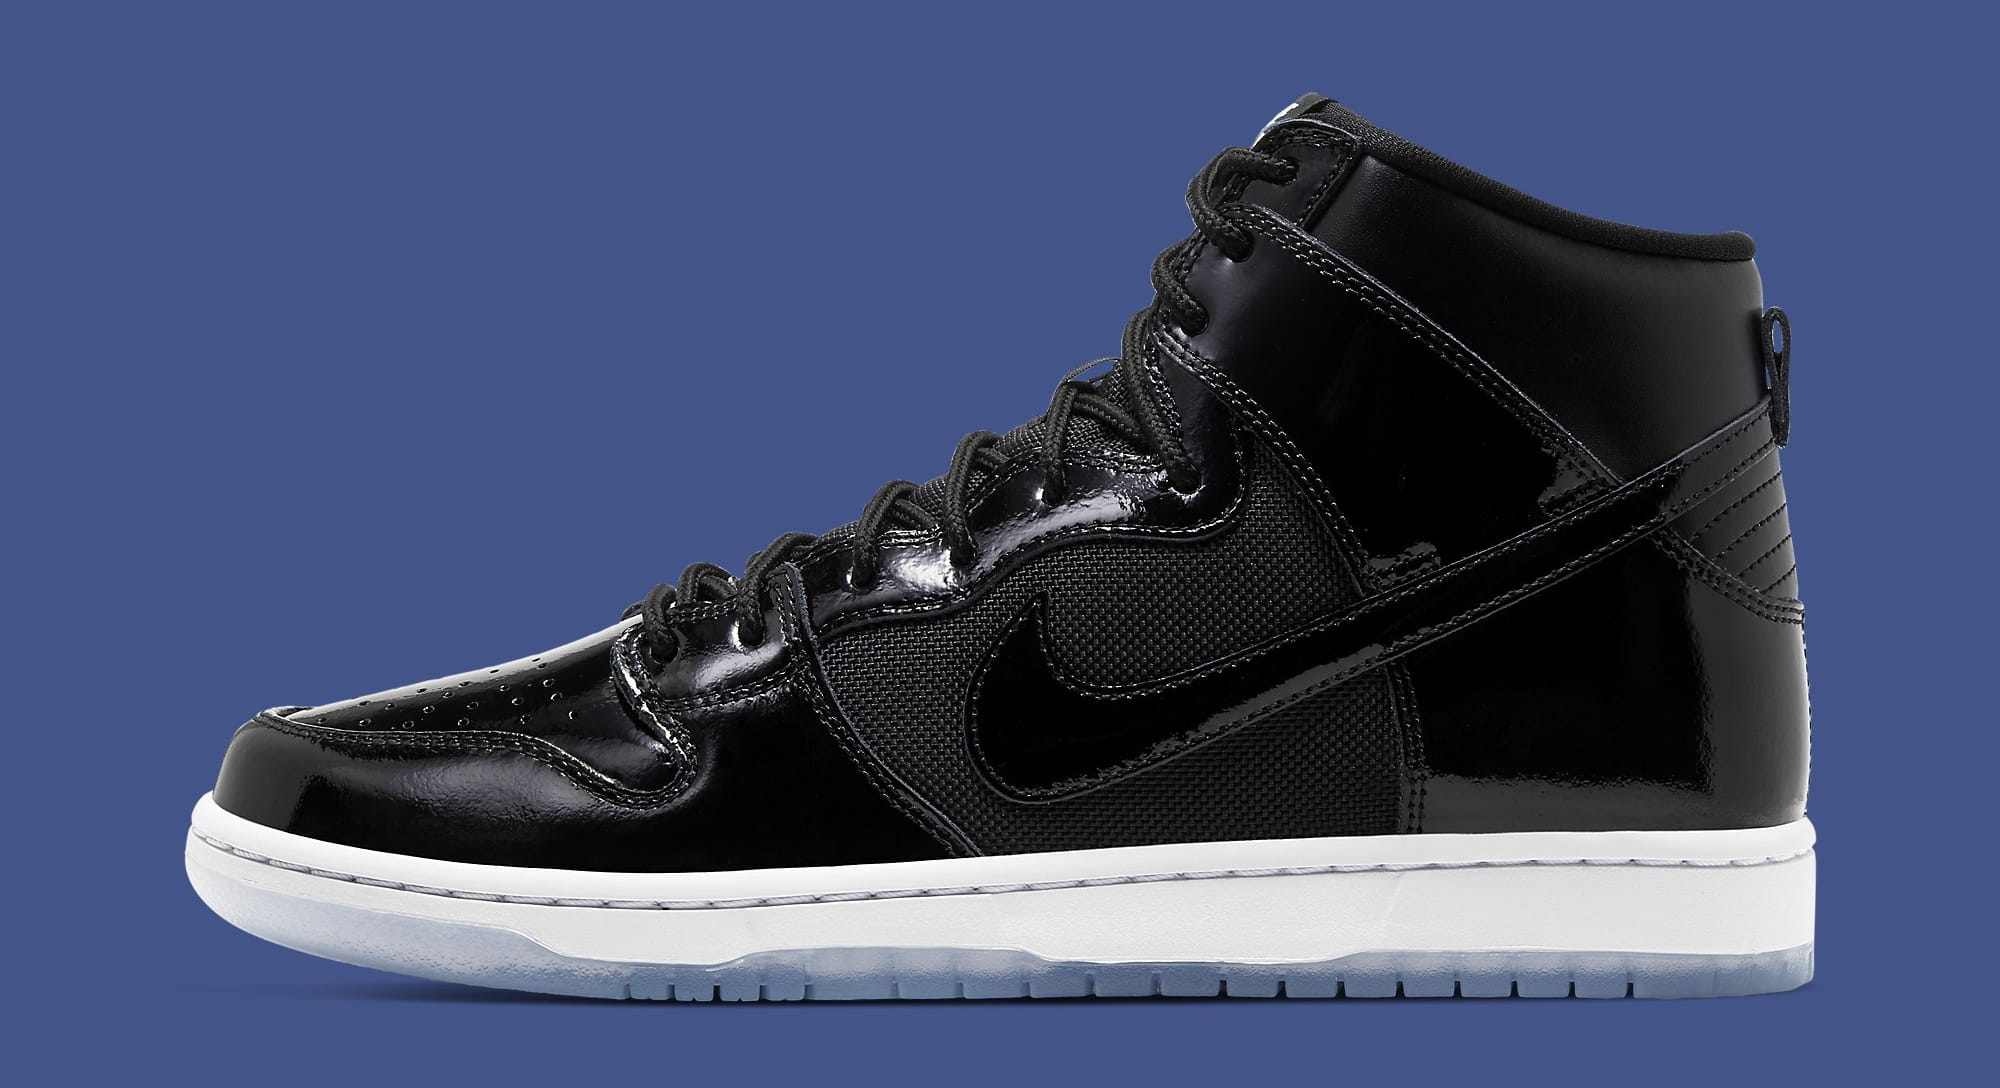 nike-sb-dunk-high-space-jam-bq6826-002-lateral